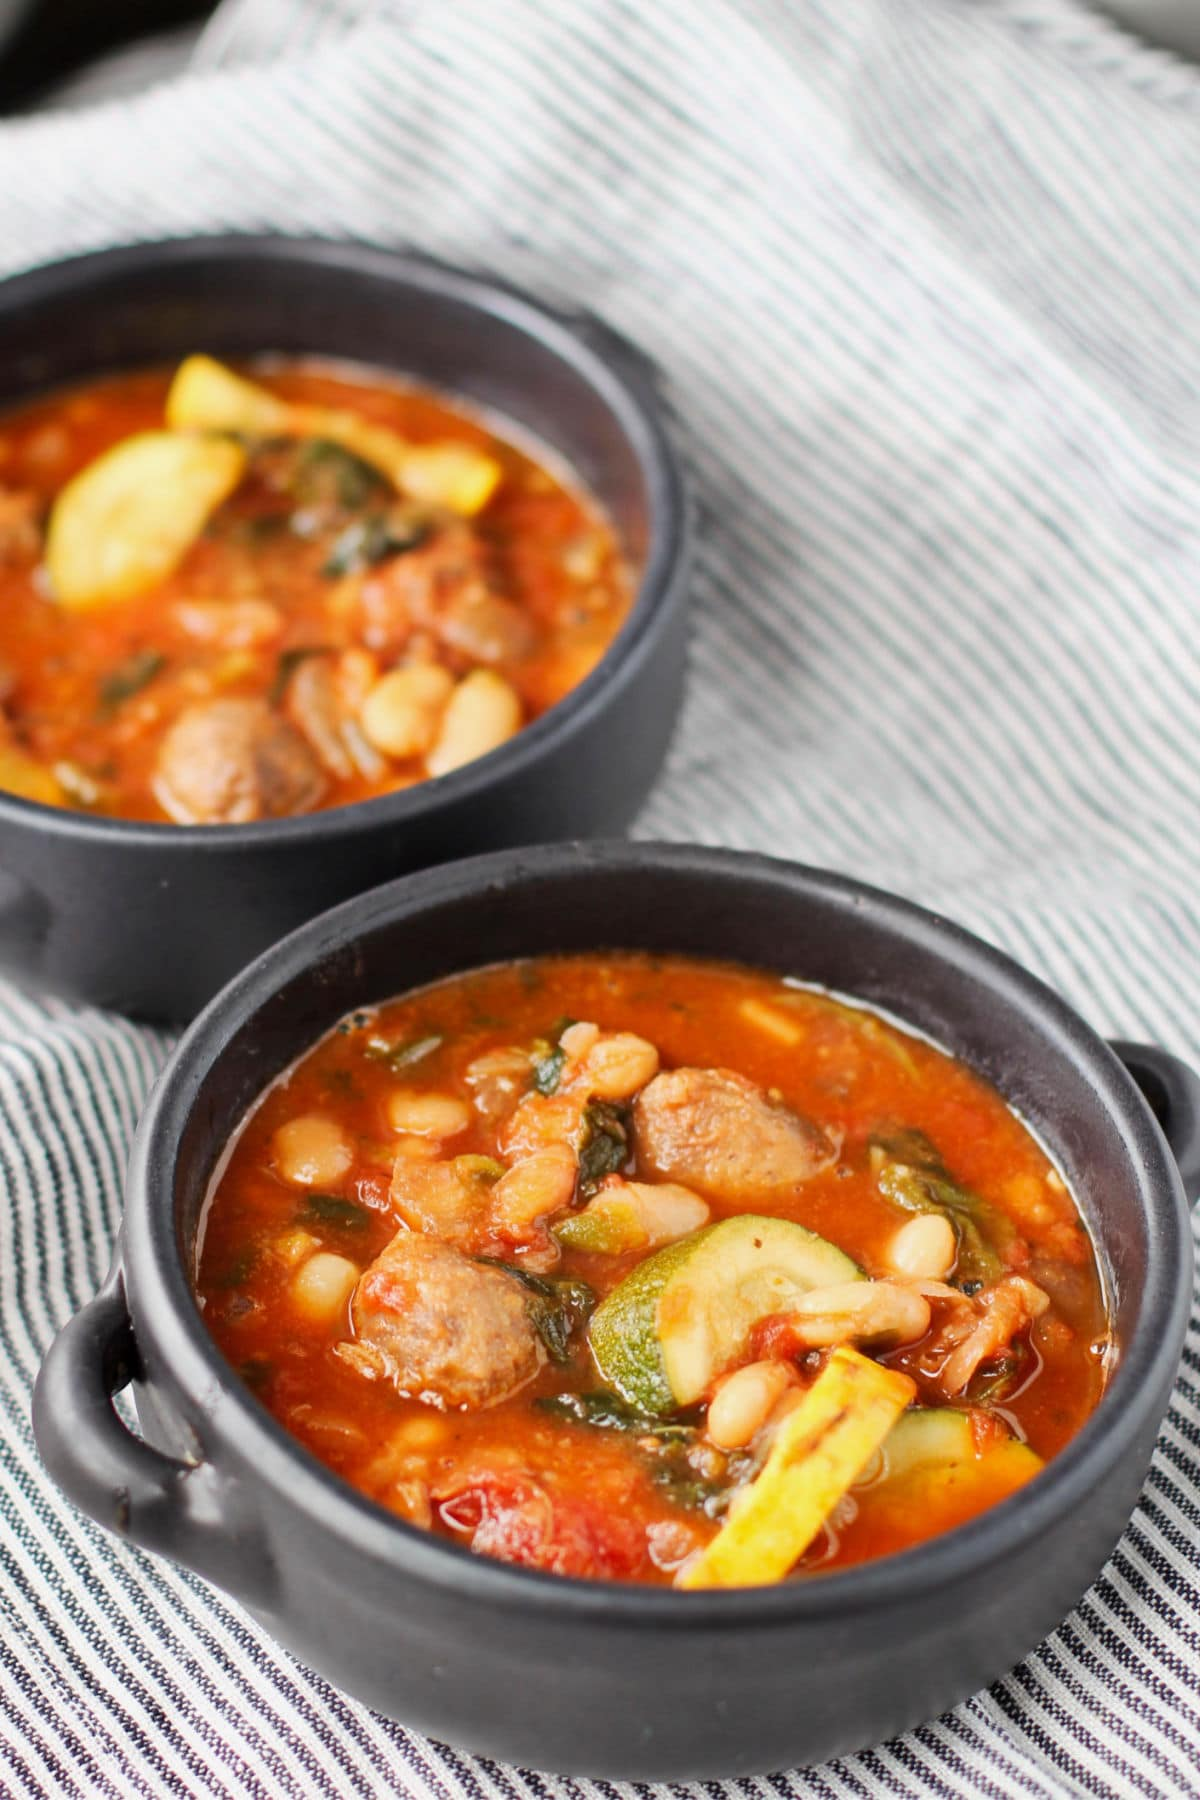 Sausage, Vegetable, and Bean Soup in a bowl.